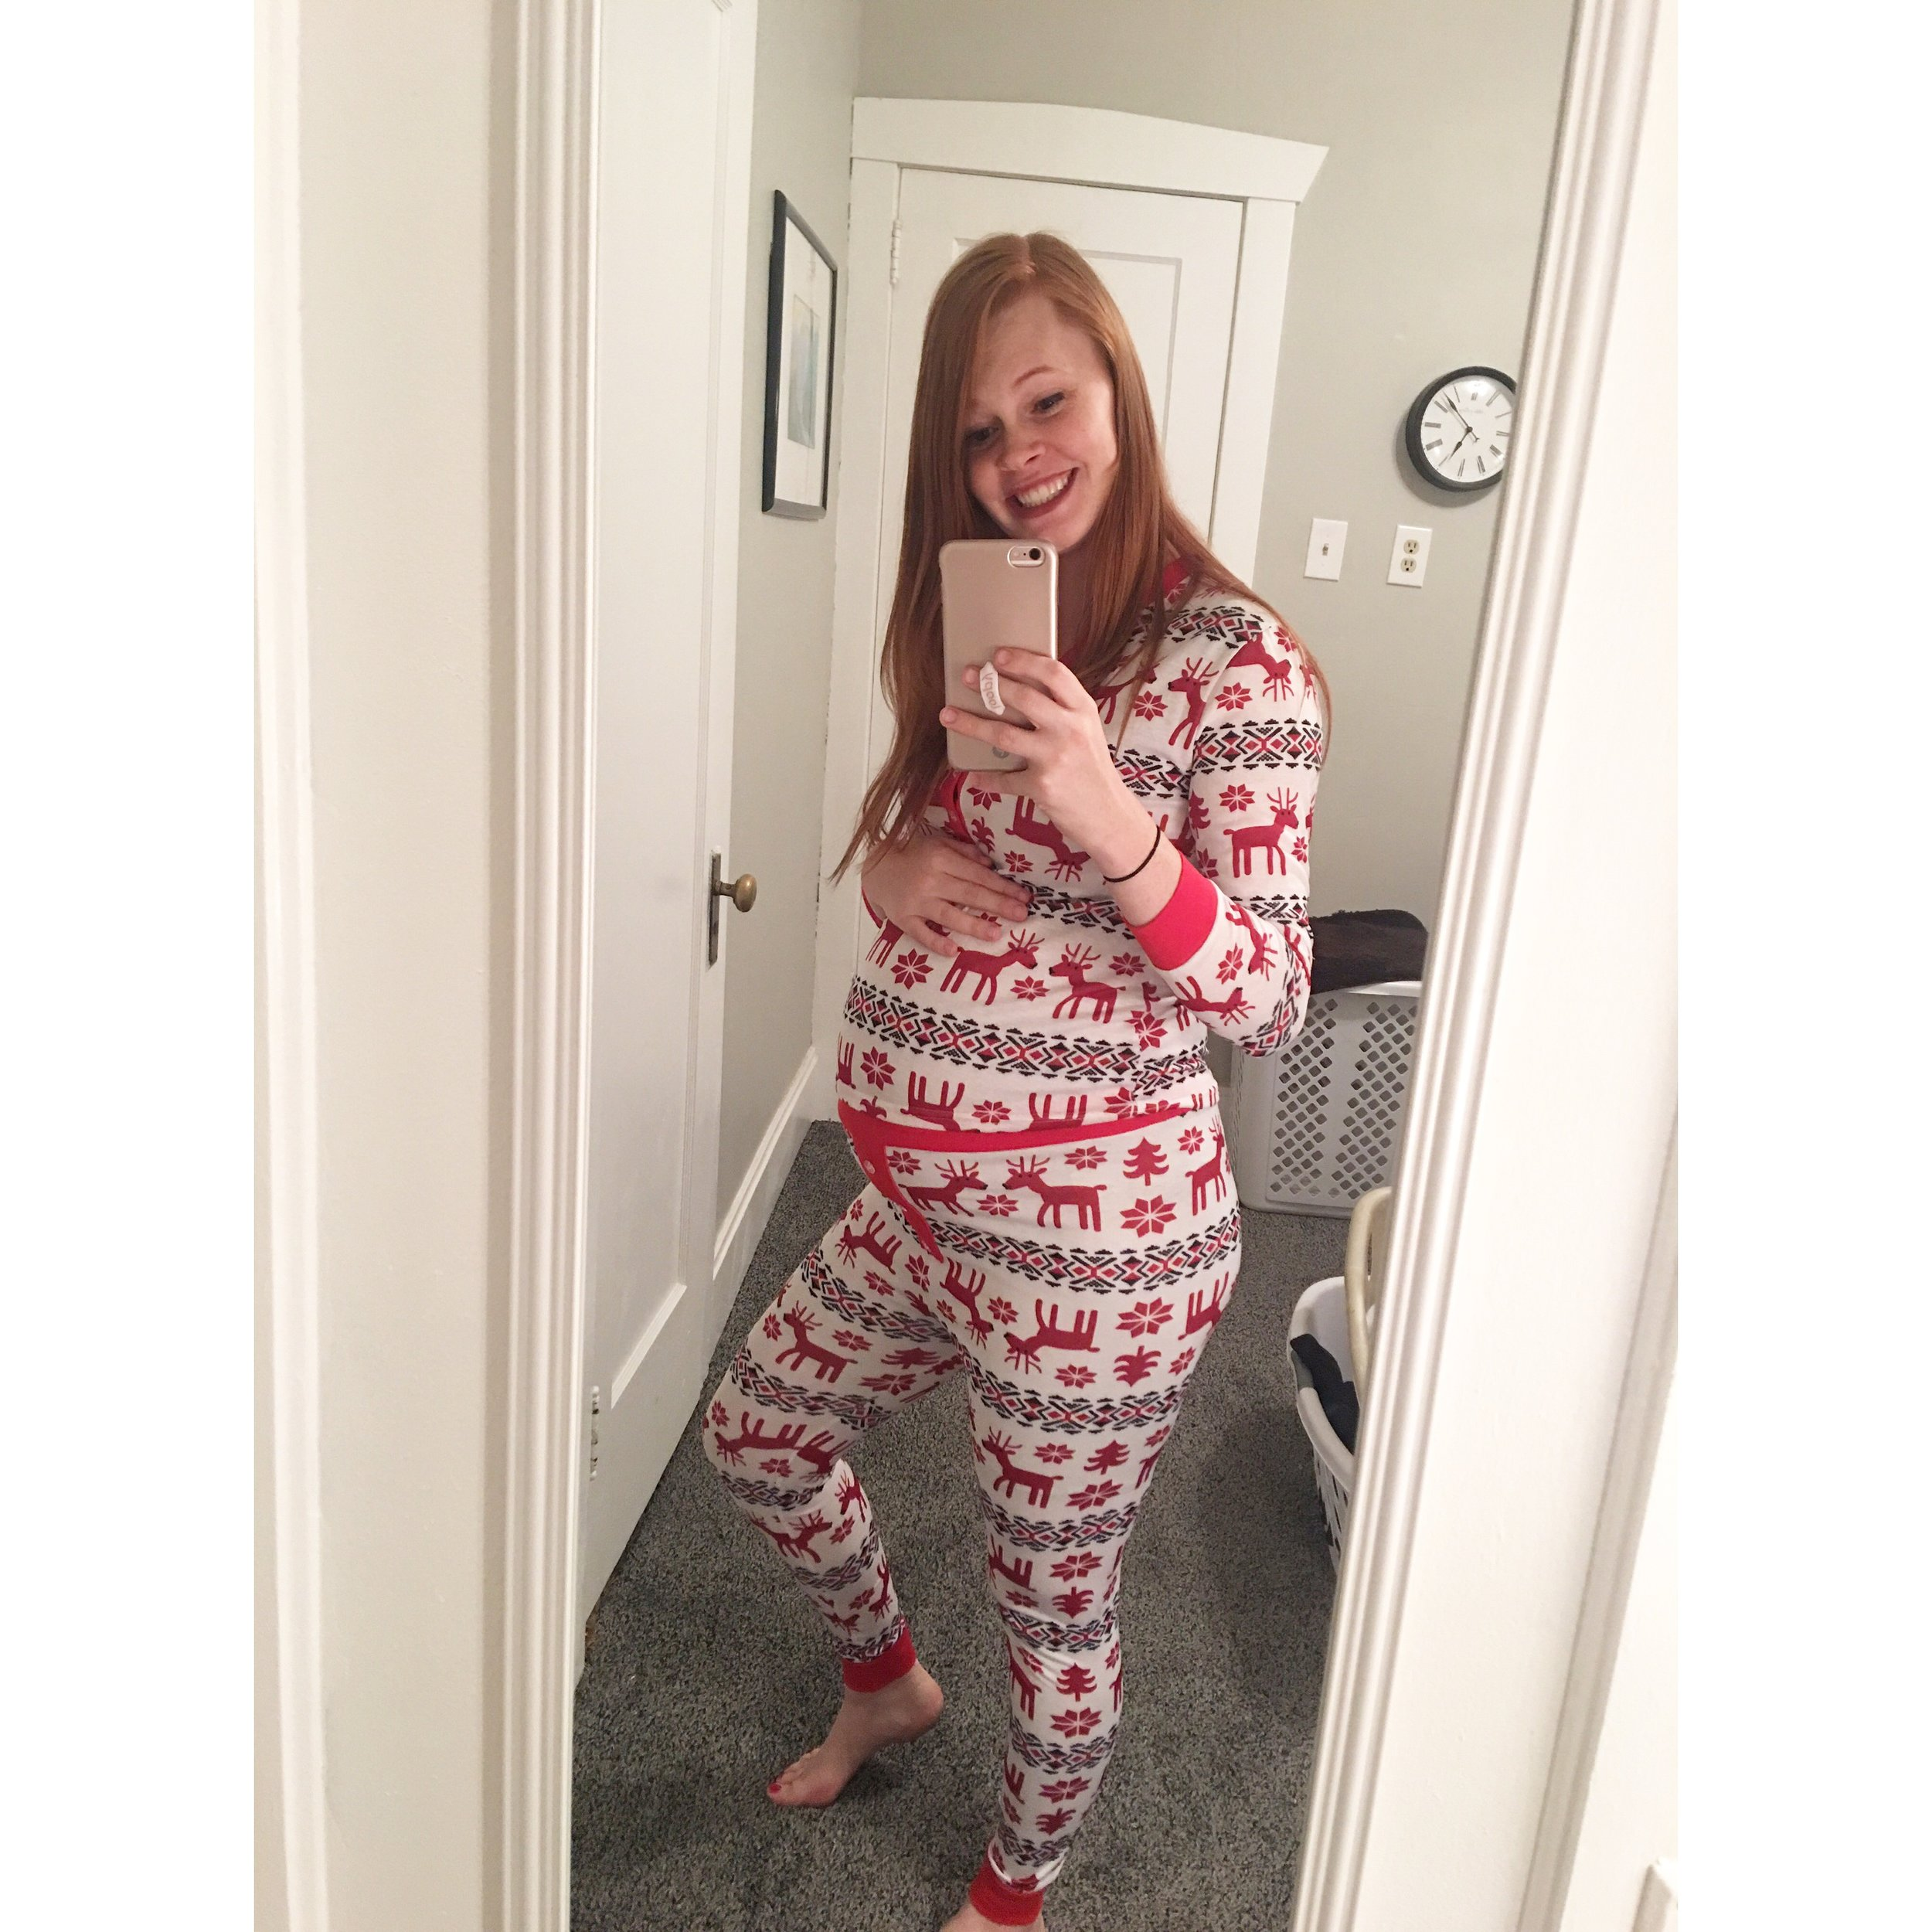 Christmas jammies for the win! Even if they don't quite fit over my belly!